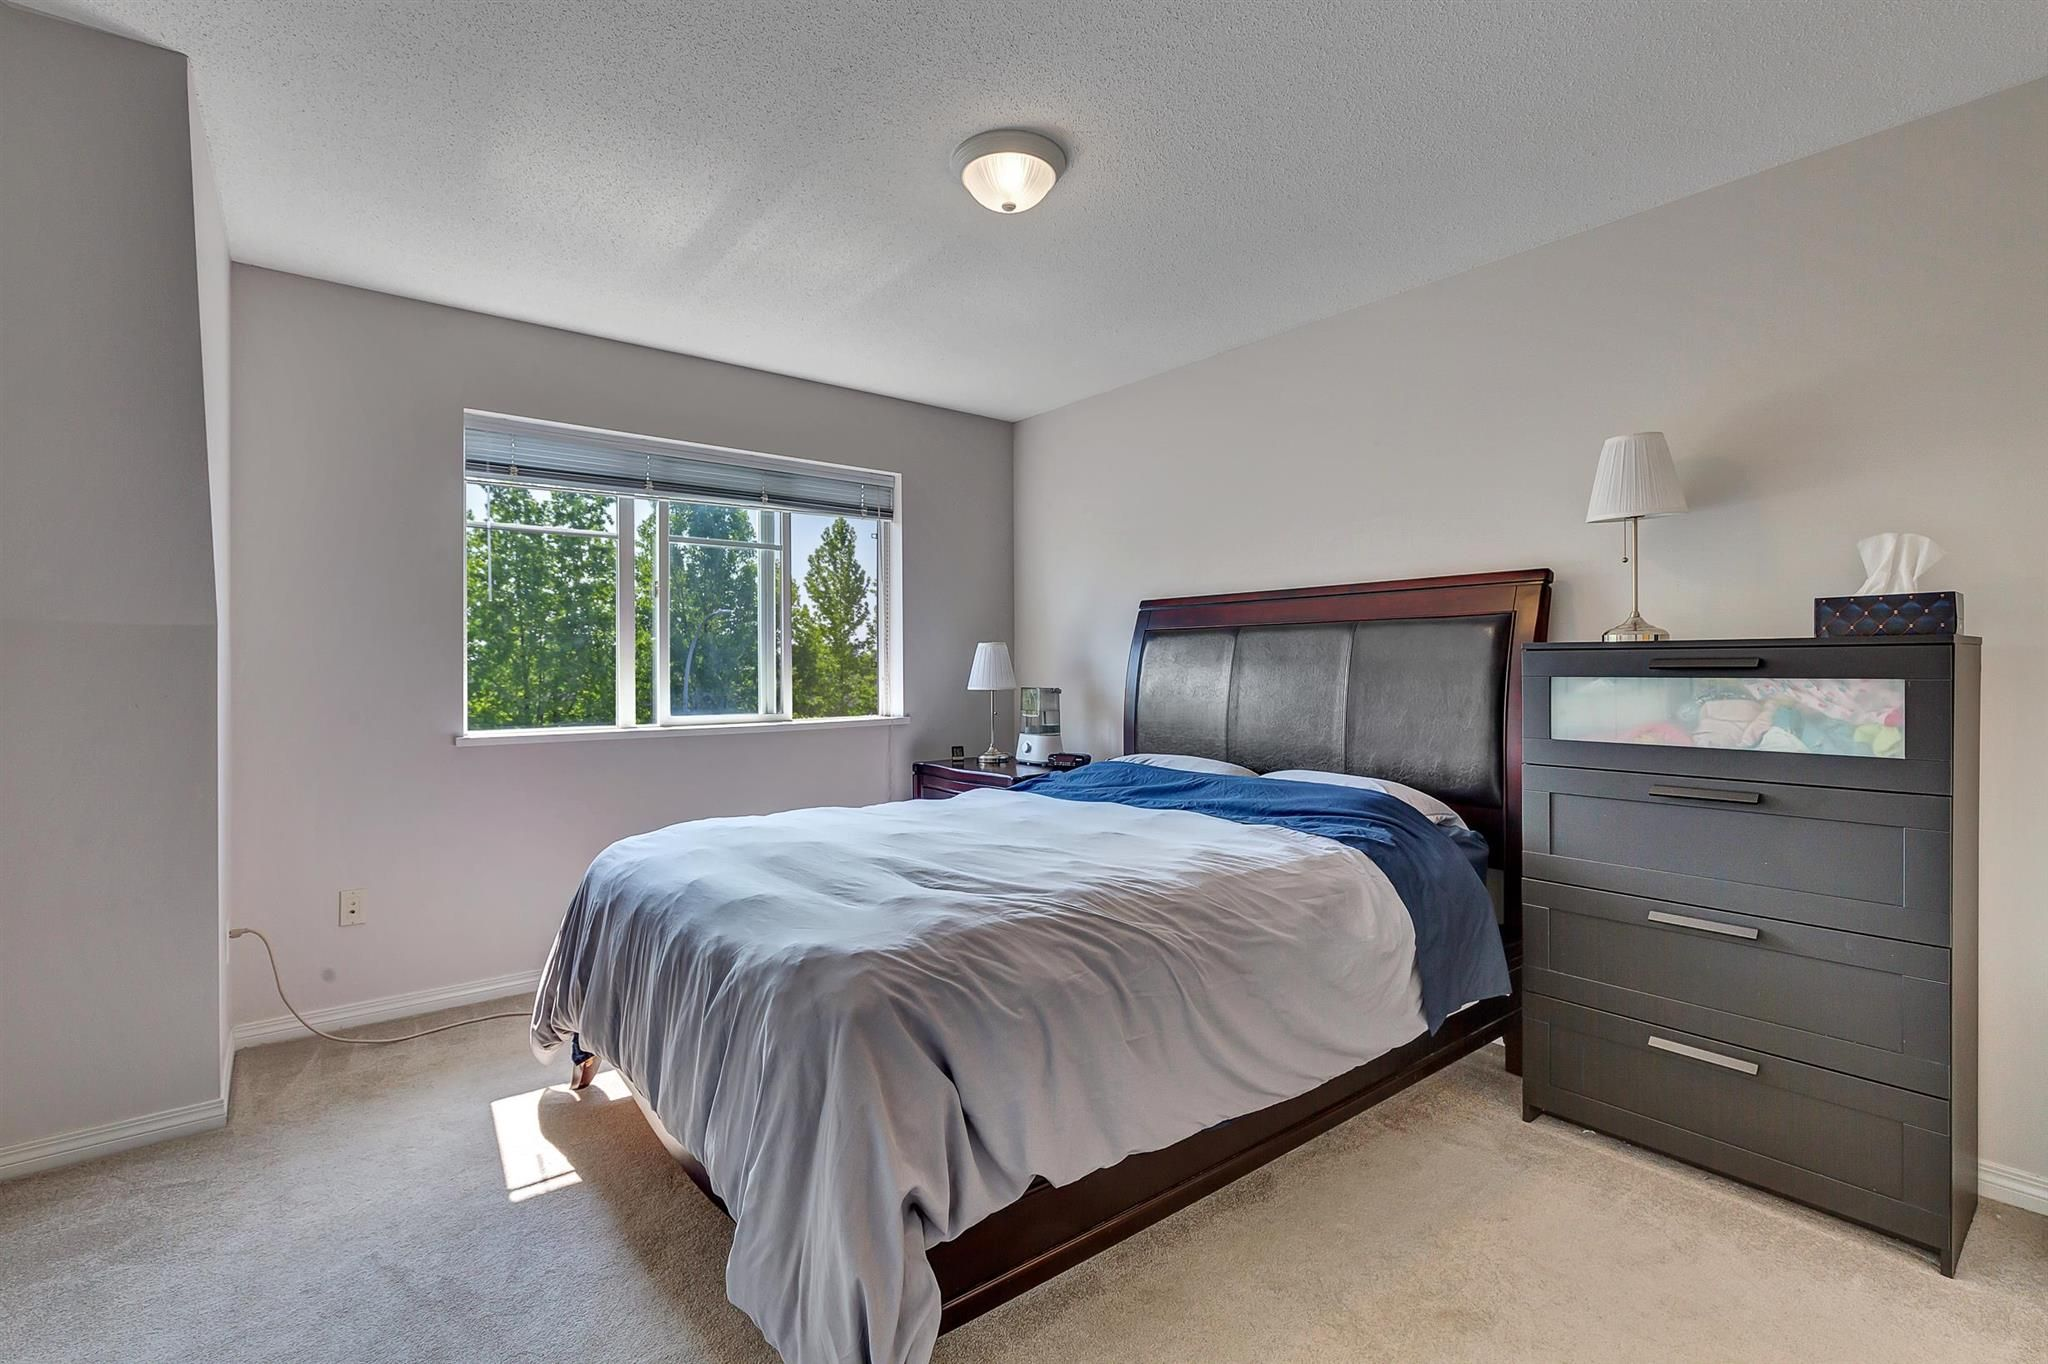 """Photo 20: Photos: 9 15871 85 Avenue in Surrey: Fleetwood Tynehead Townhouse for sale in """"Huckleberry"""" : MLS®# R2606668"""